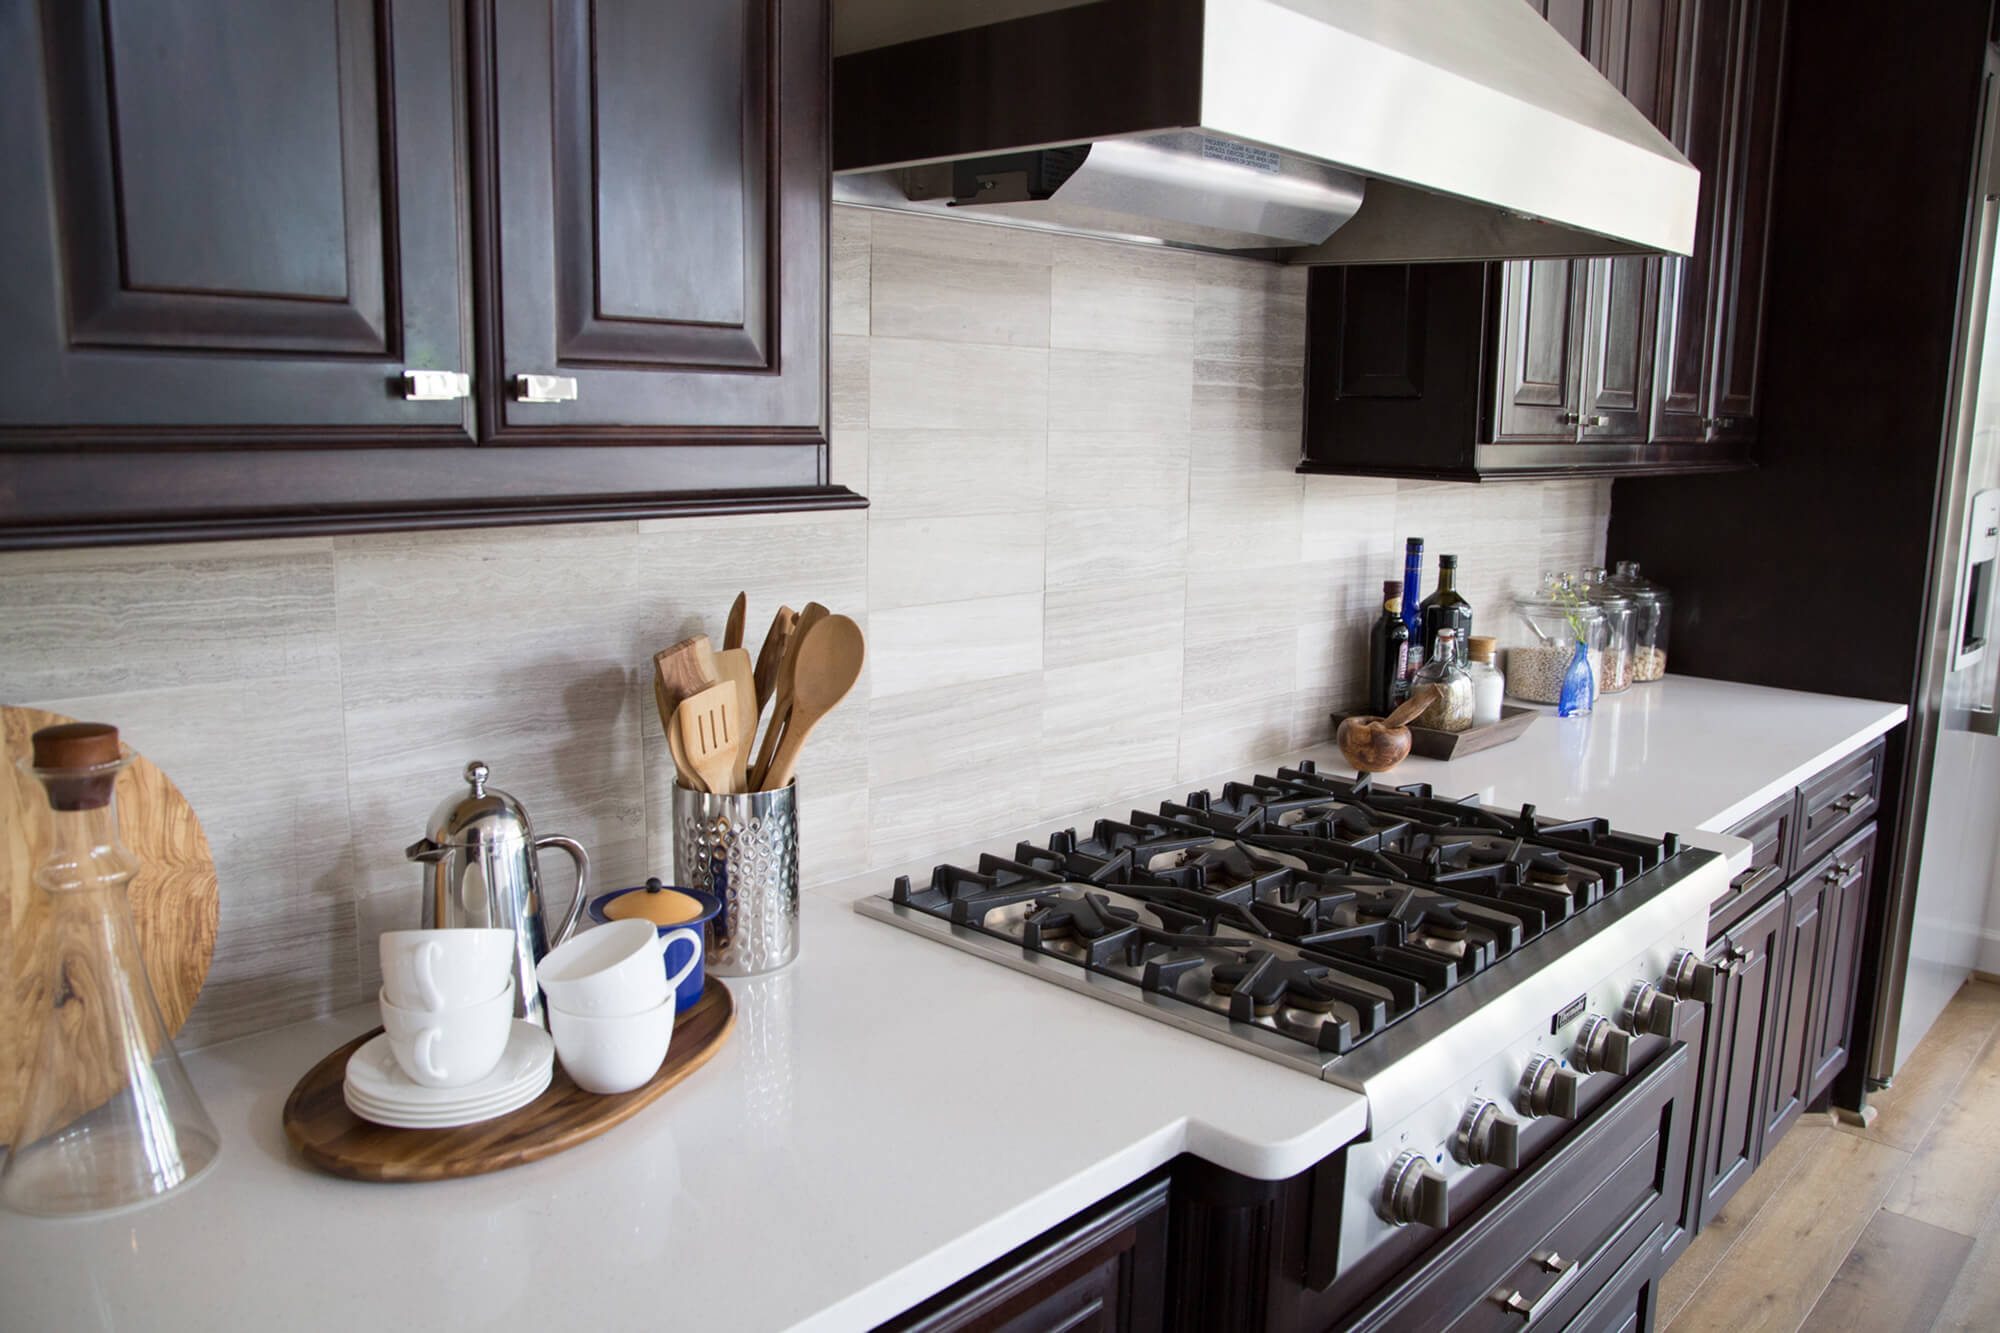 When To Use A Natural Stone Backsplash And When NOT To ... Soapstone Countertops Marble Kitchen Backsplash on kitchen sinks soapstone, kitchen countertops soapstone, kitchen faucet soapstone,